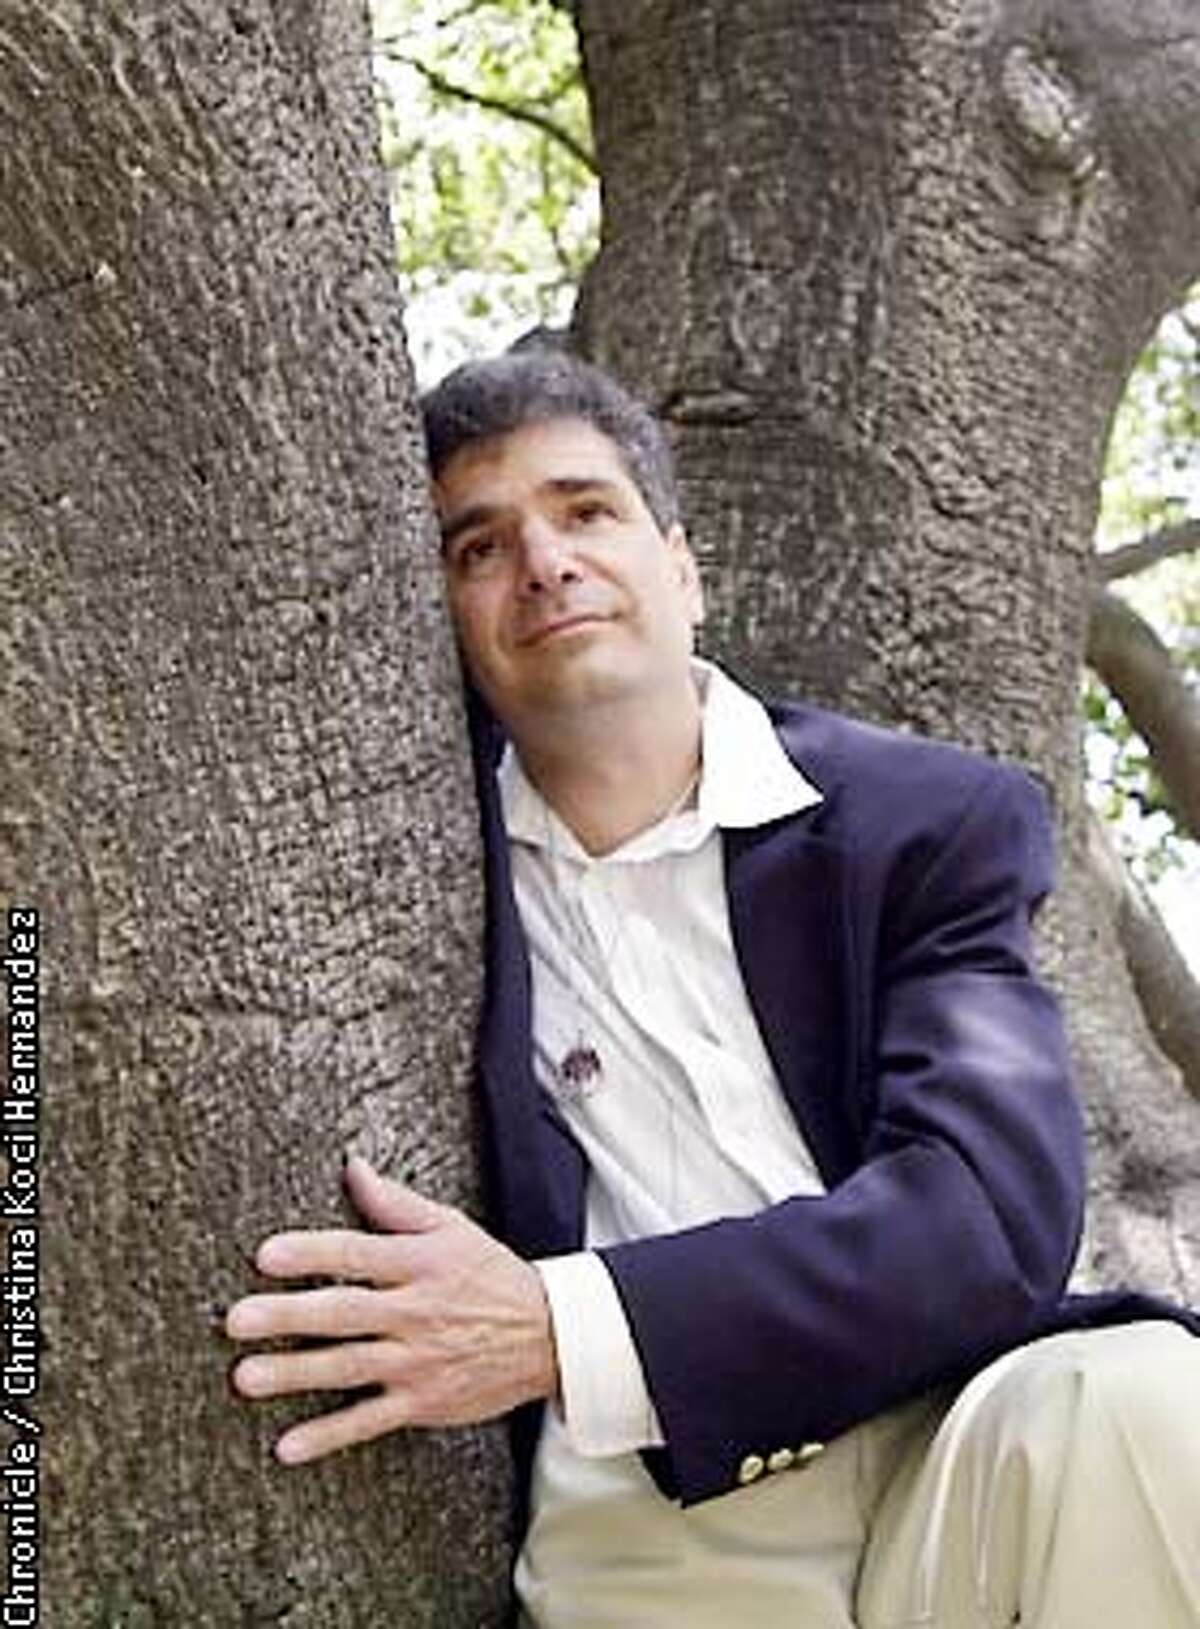 CHRISTINA KOCI HERNANDEZ/CHRONICLE David Cherney and the Earth First plaintifs were awarded $4.4 in a lawsuit against the Oakland police and FBI.